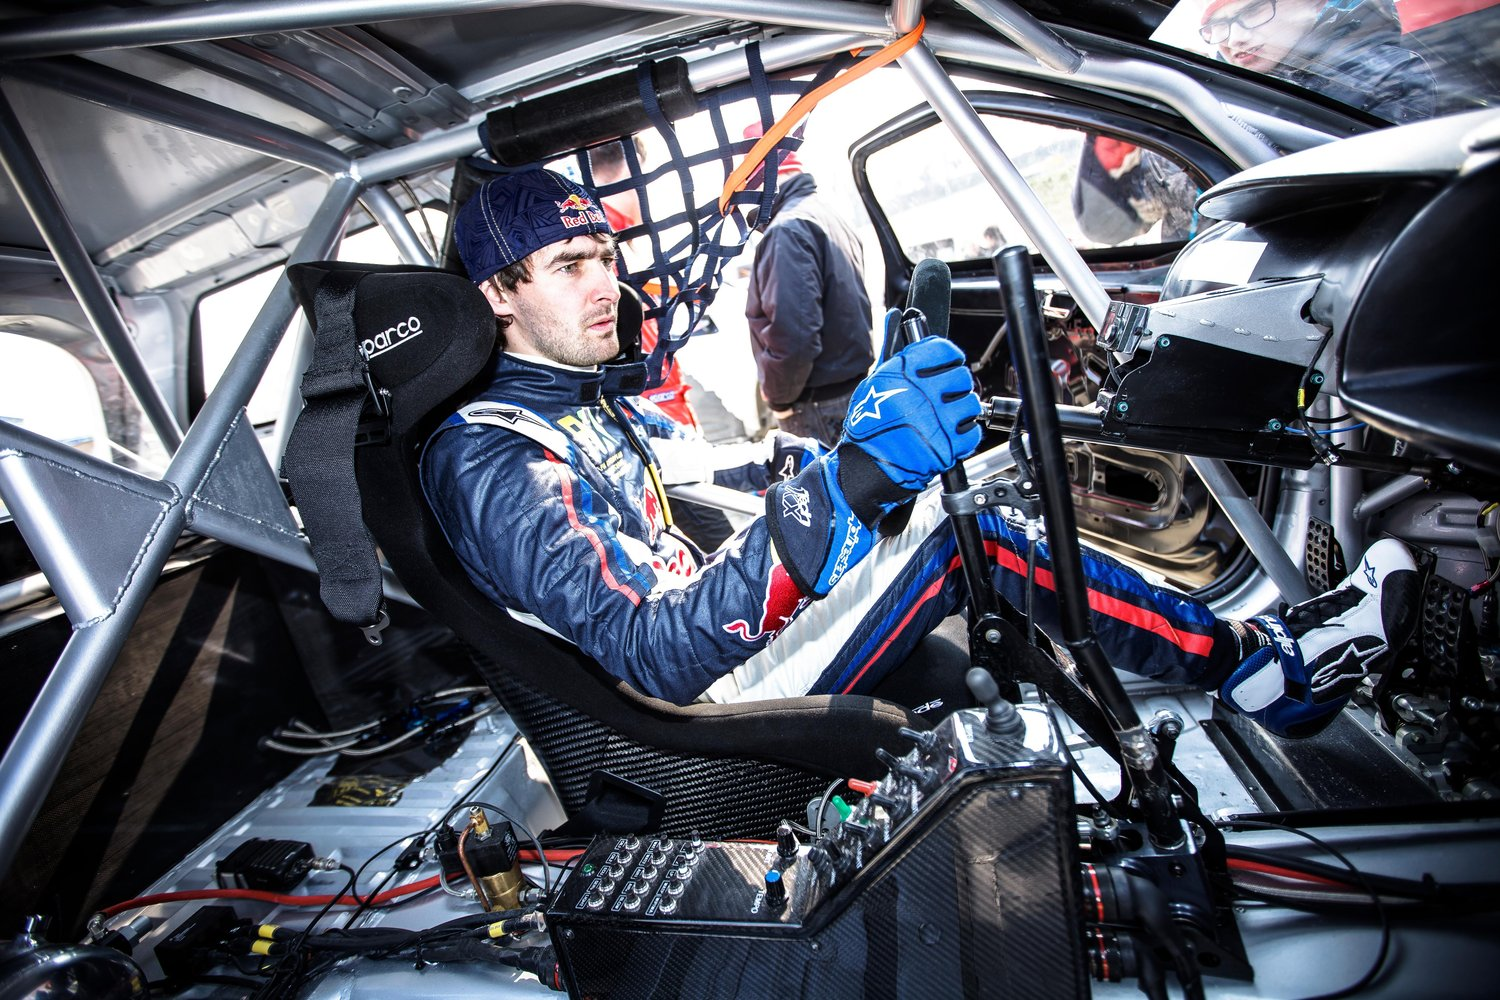 Timur Timerzyanov prepares to test the DS3 during the Hansen Motorsport Test Sessions in Essay, France on March 28th, 2013 // Flavien Duhamel/Red Bull Content Pool // P-20130329-00144 // Usage for editorial use only // Please go to www.redbullcontentpool.com for further information. //